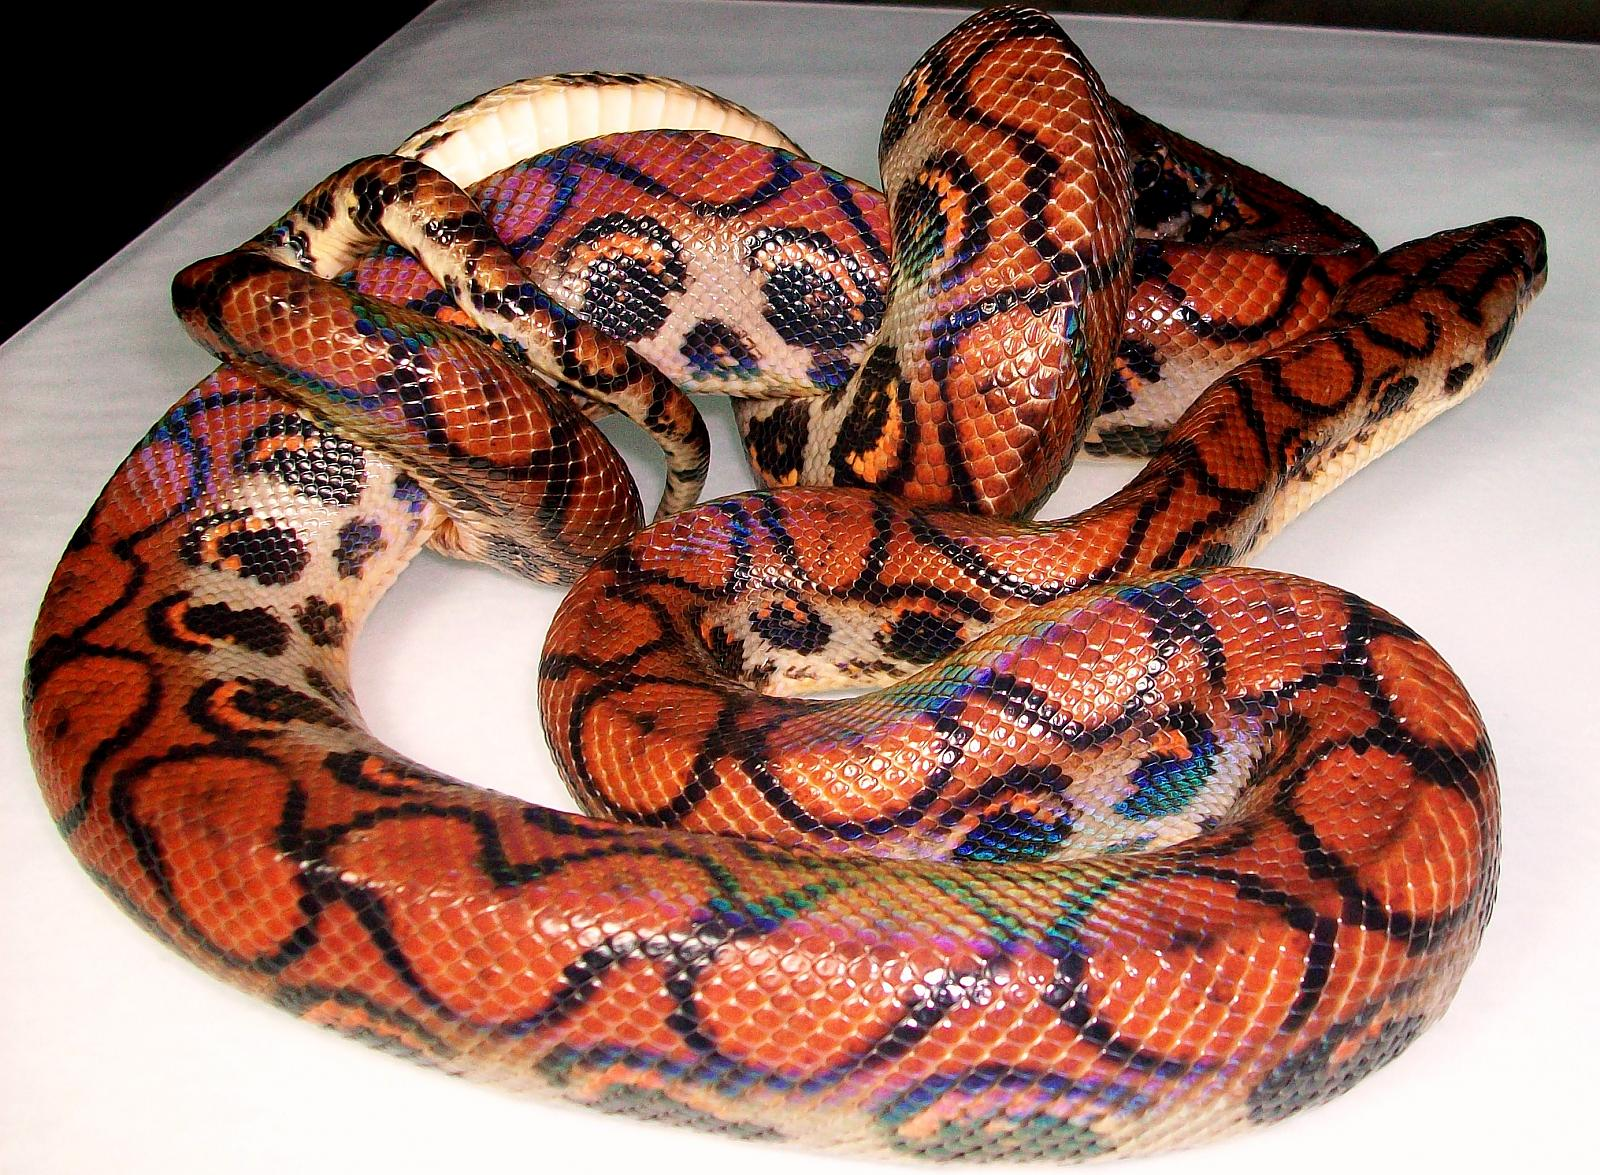 rainbow boa | Creatures great and small | Pinterest